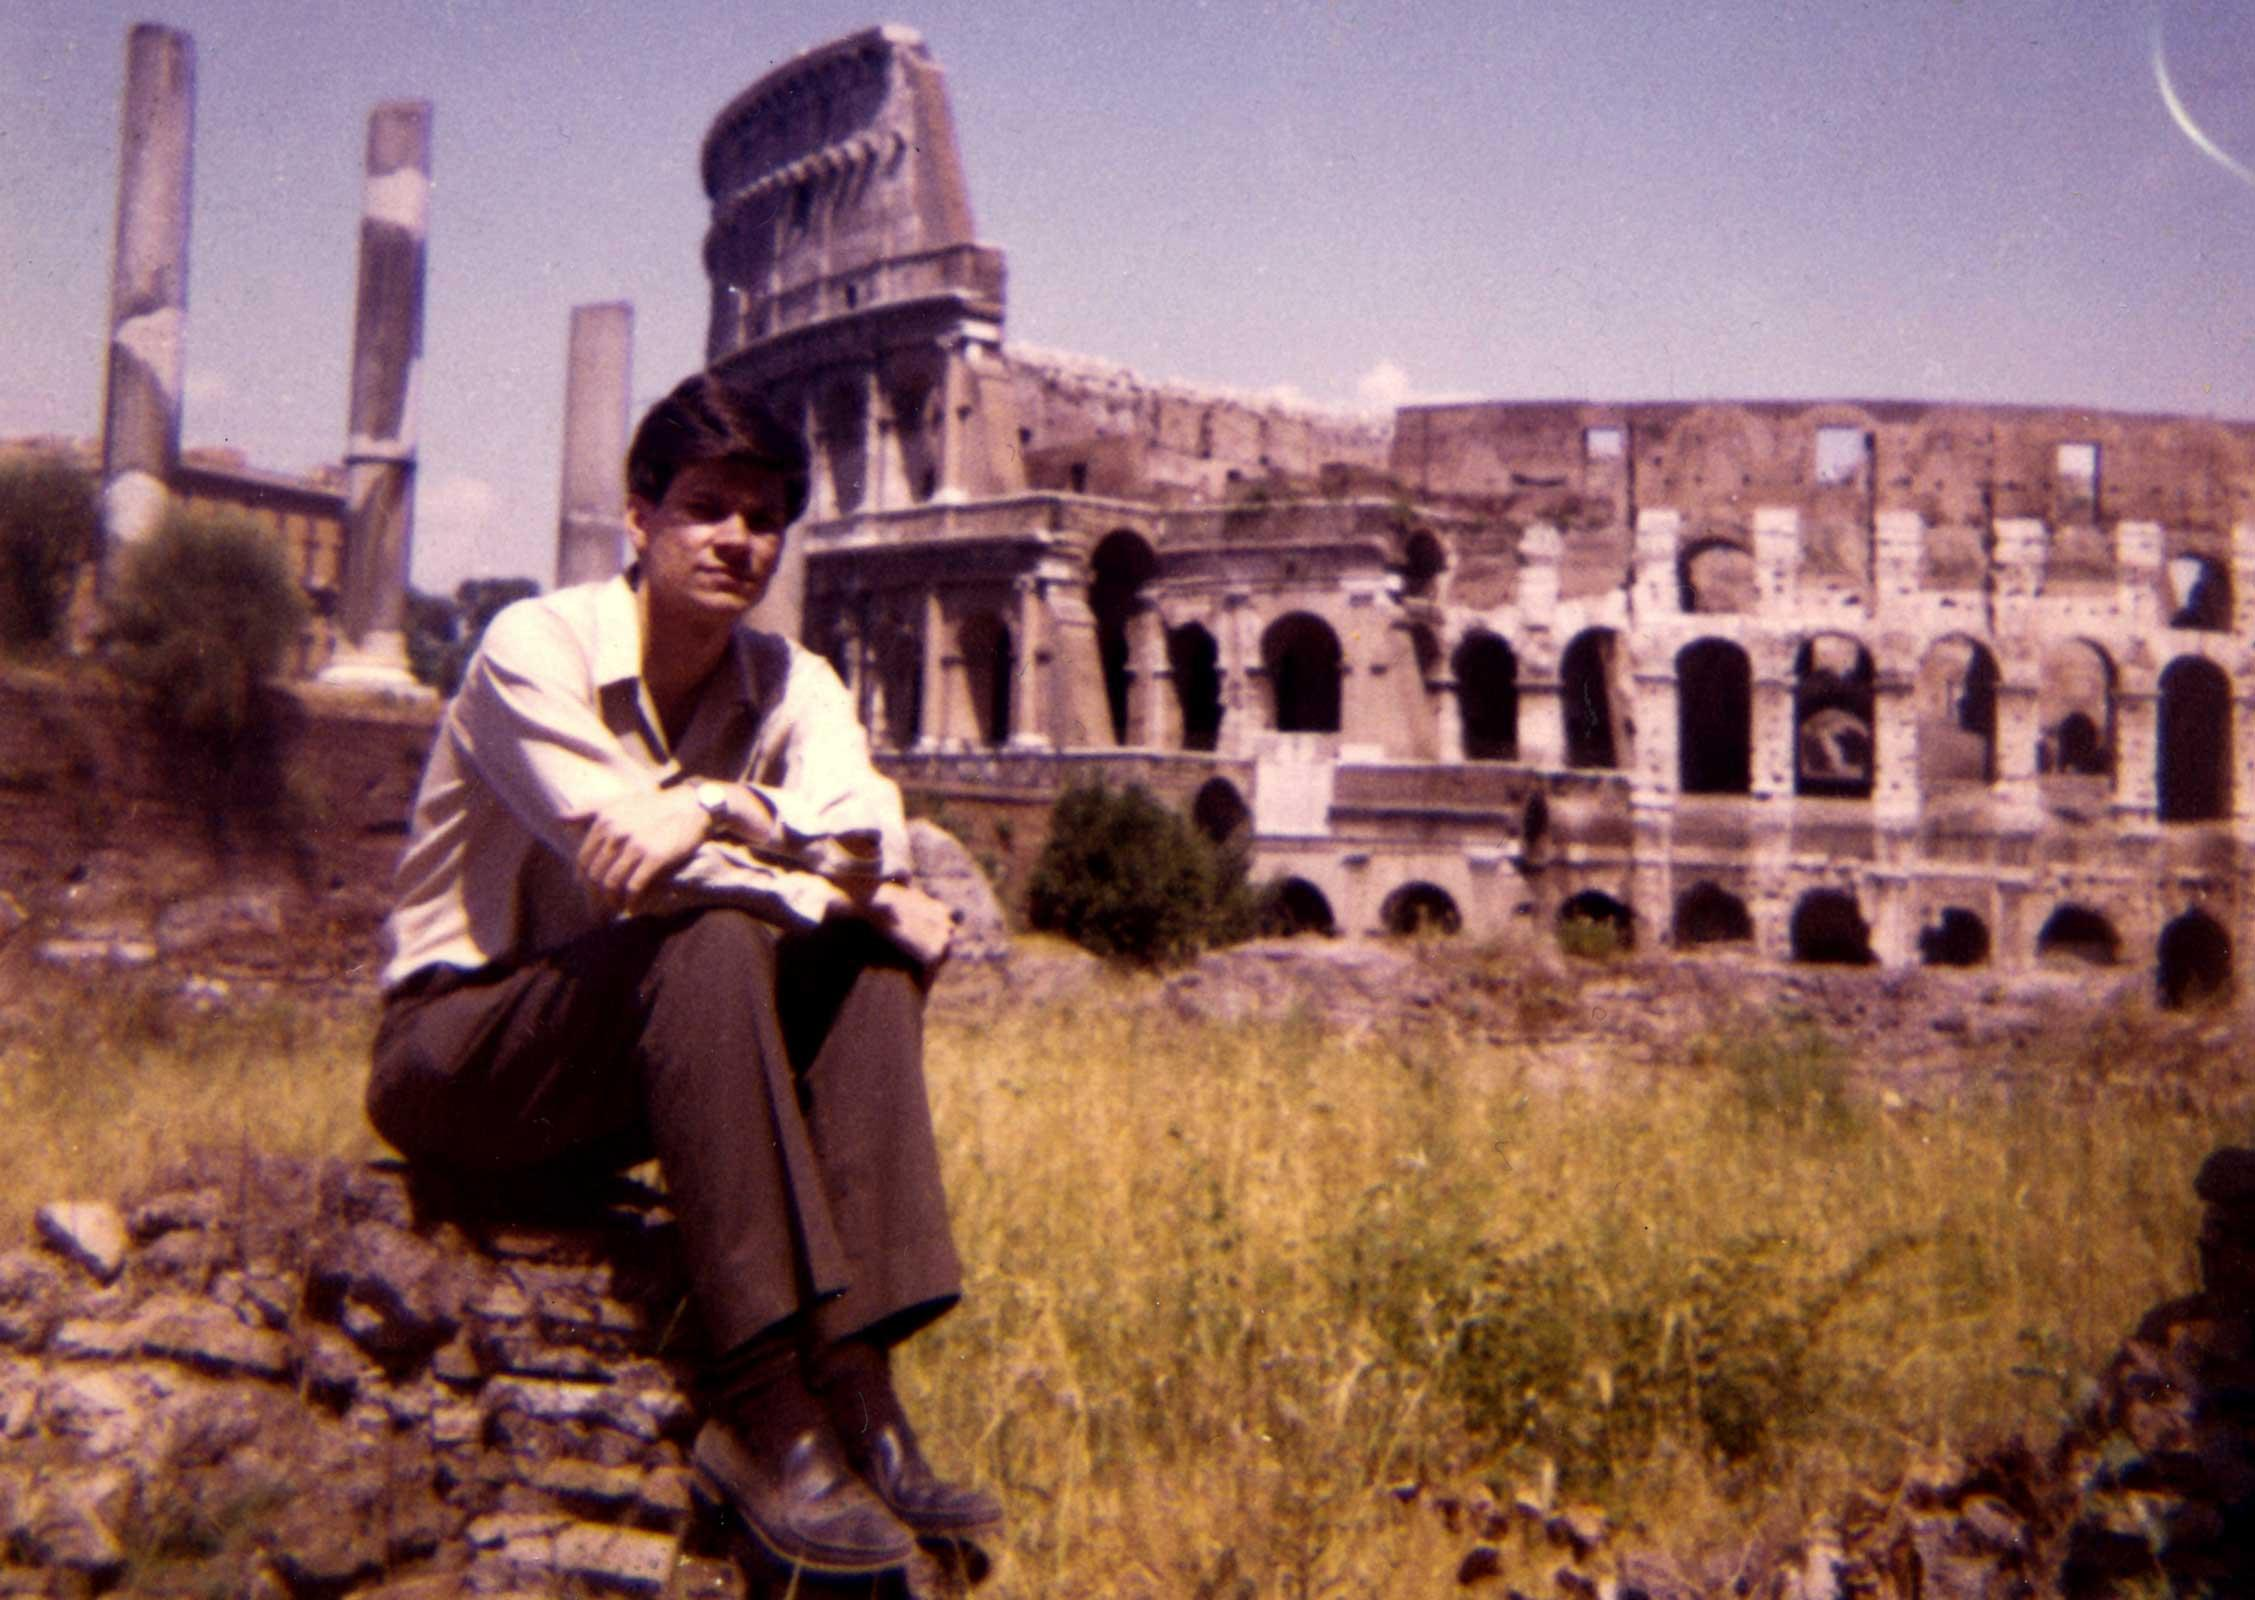 a young man seated on a rock with the Colosseum in Rome in the background